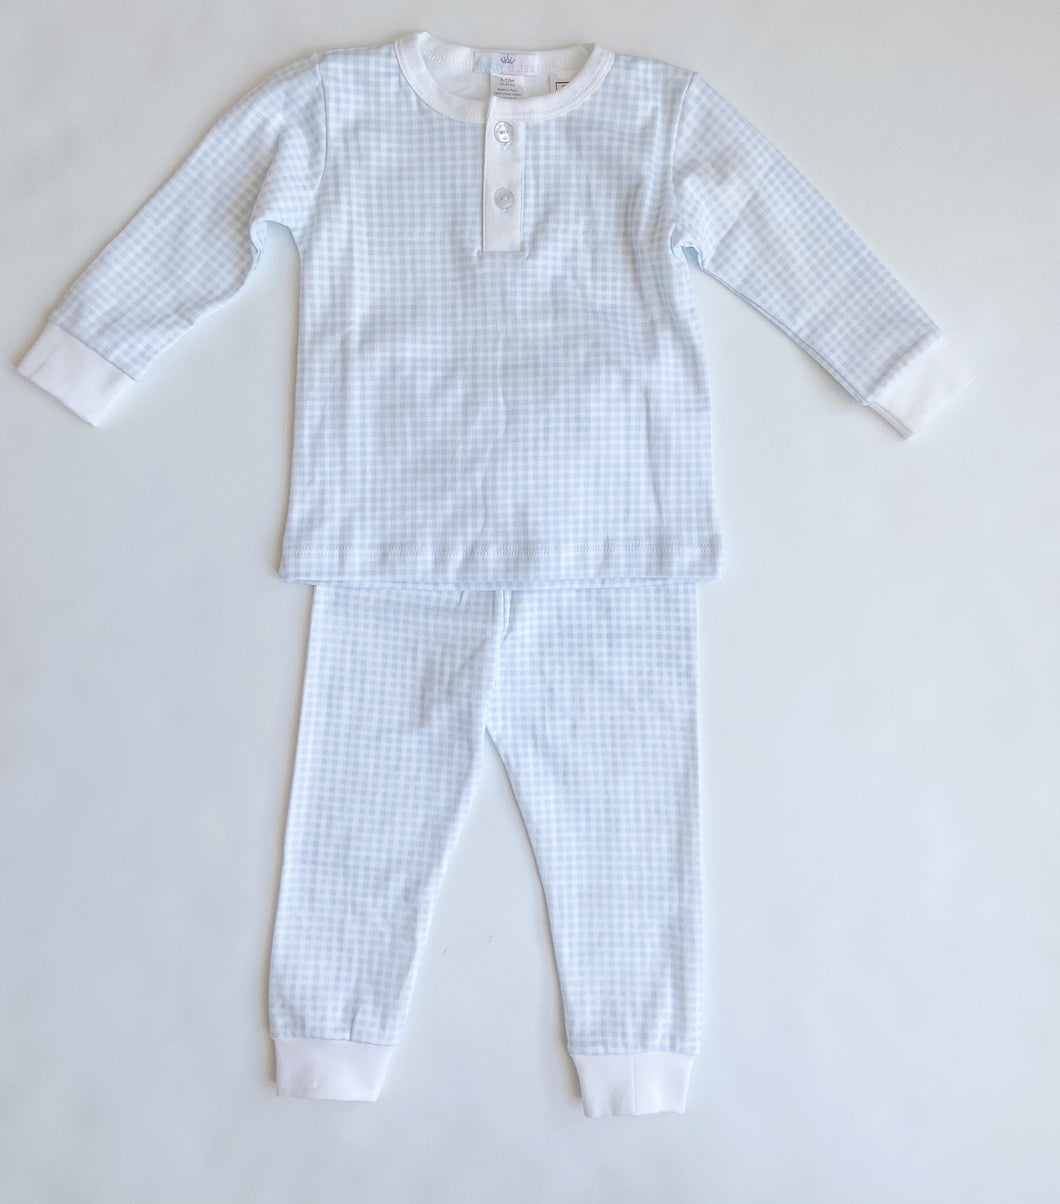 Blue Gingham Loungewear Set - Toddler Boys